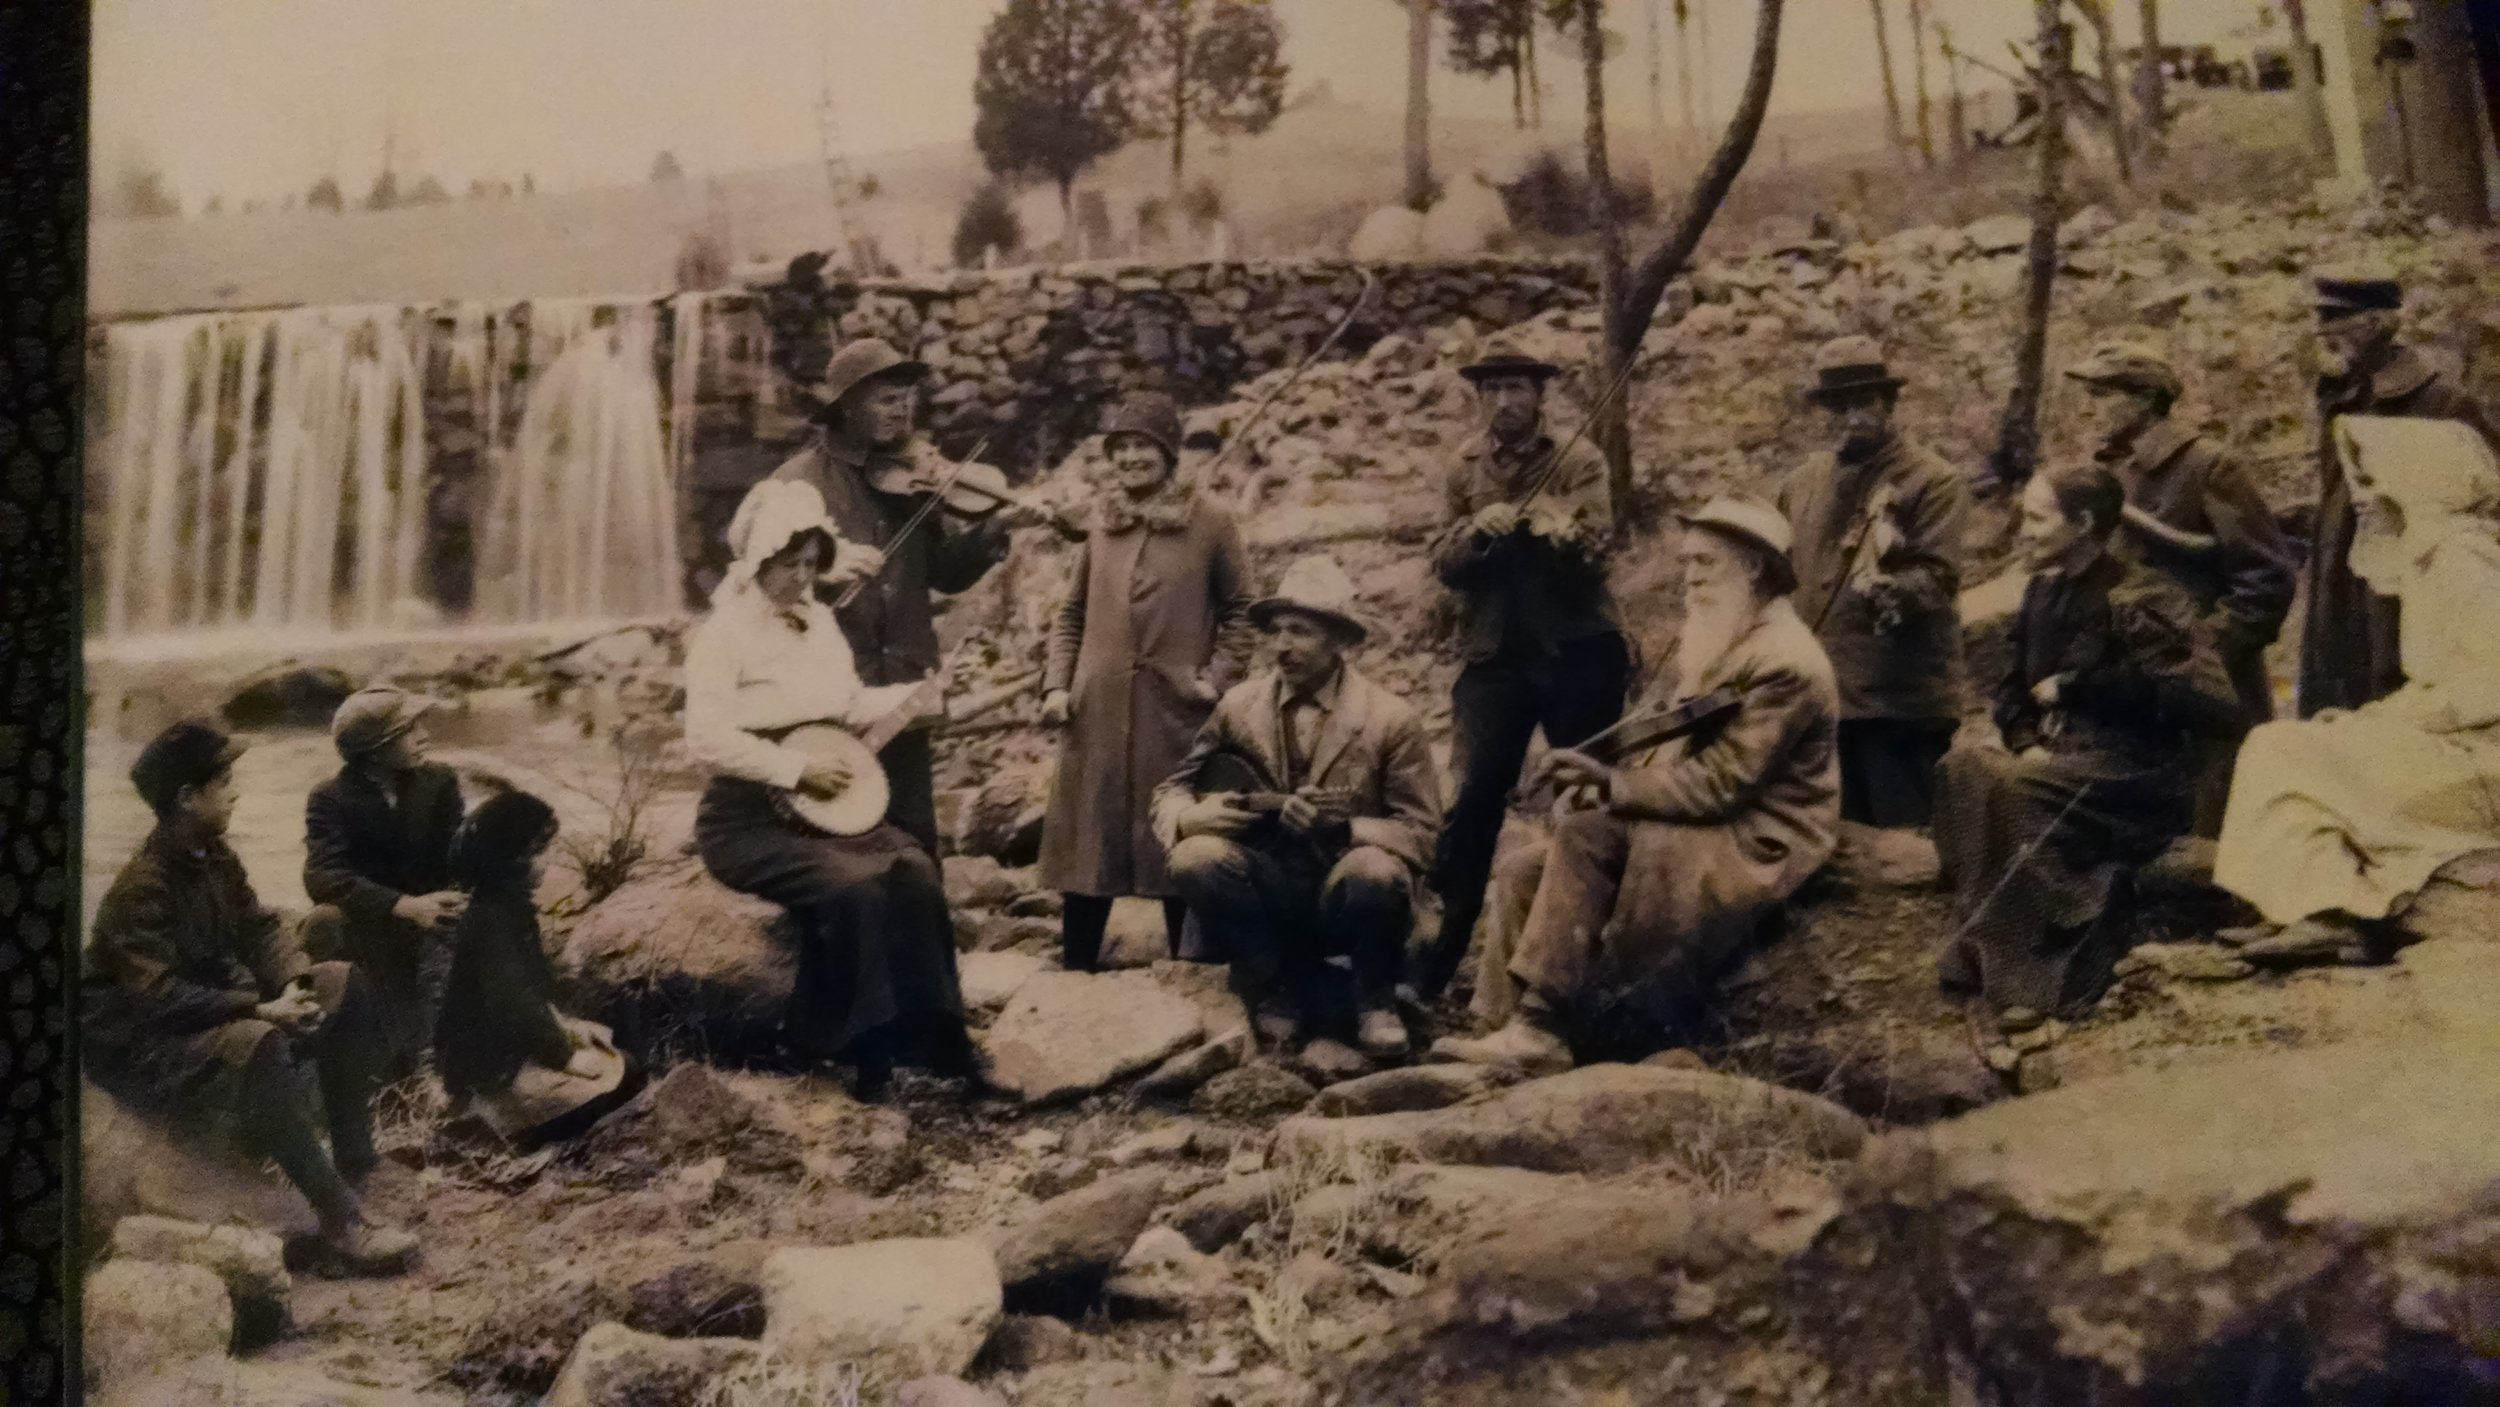 A picture of Carol's Grandmother (banjo) and Grandfather (fiddle) playing music down by the old mill.